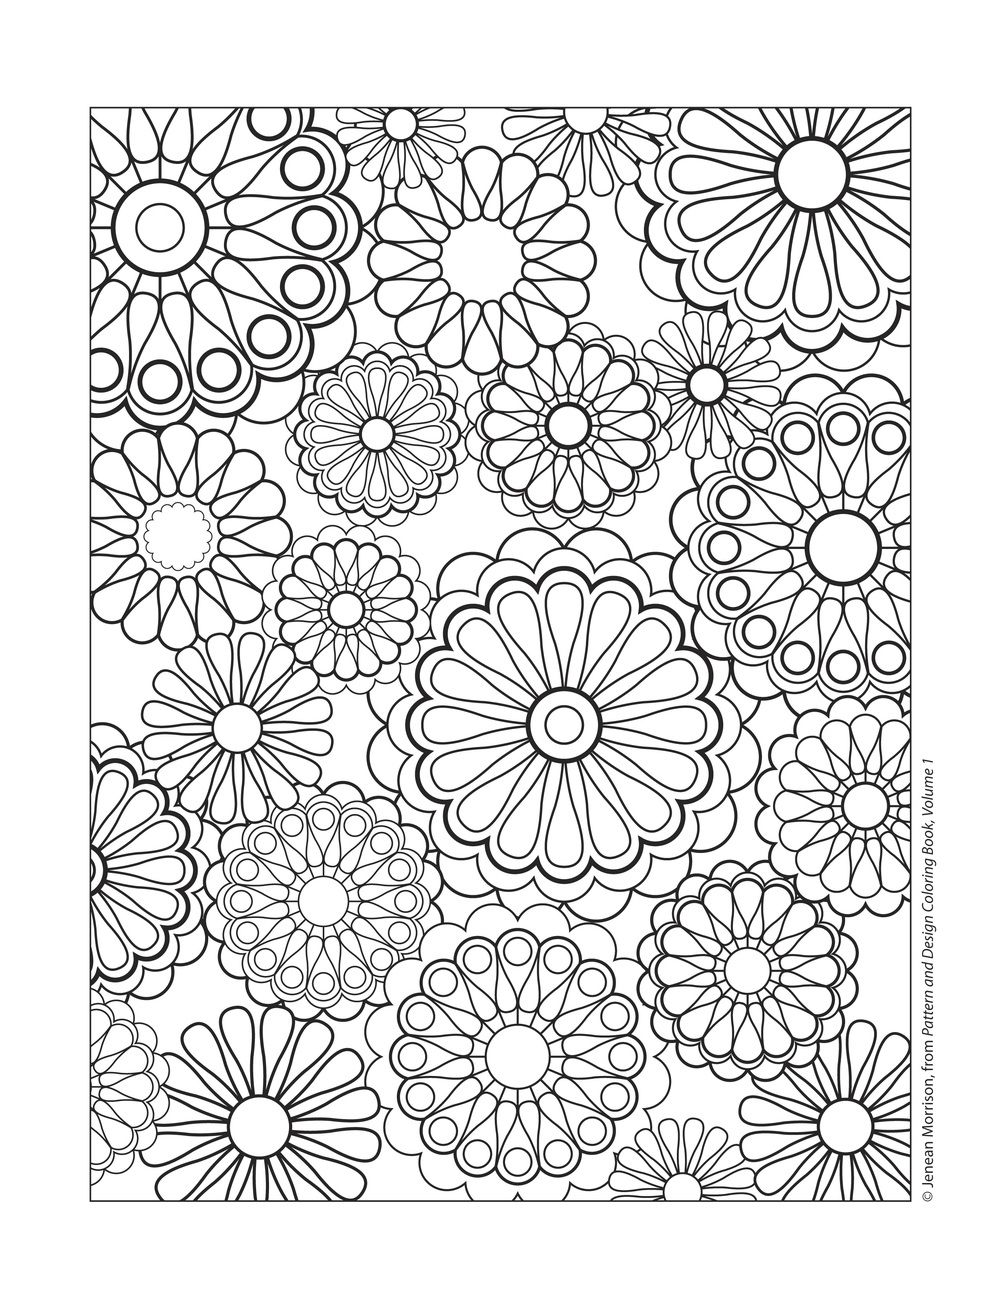 Uncategorized Free Coloring Pages Designs design patterns coloring pages free pattern pages